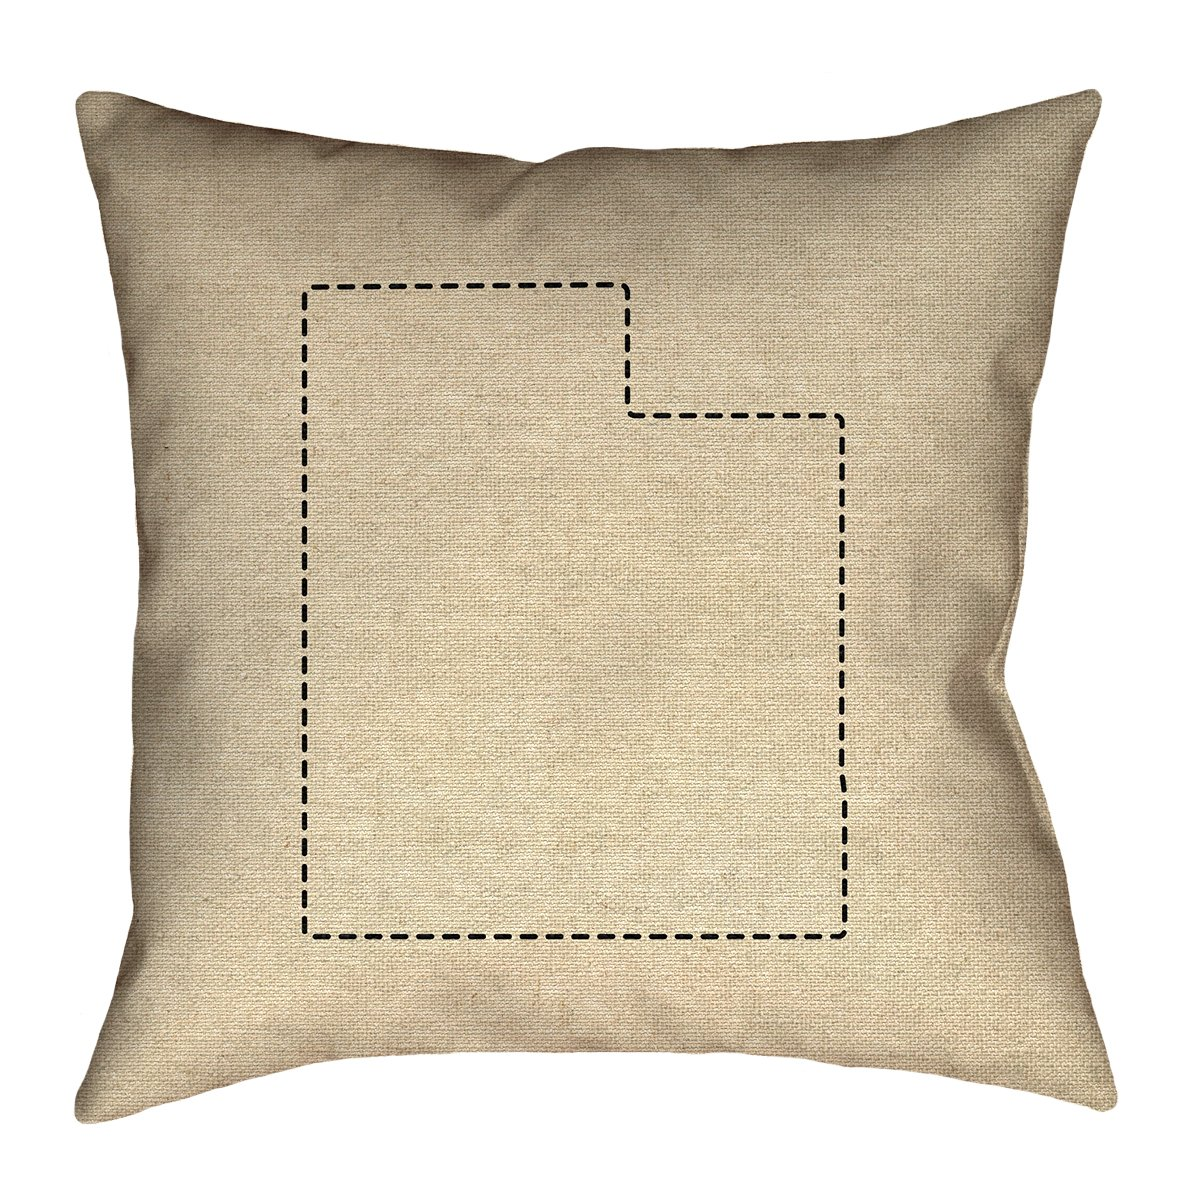 ArtVerse Katelyn Smith 28' x 28' Floor Double Sided Print with Concealed Zipper & Insert Utah Outline Pillow SMI406F2828L